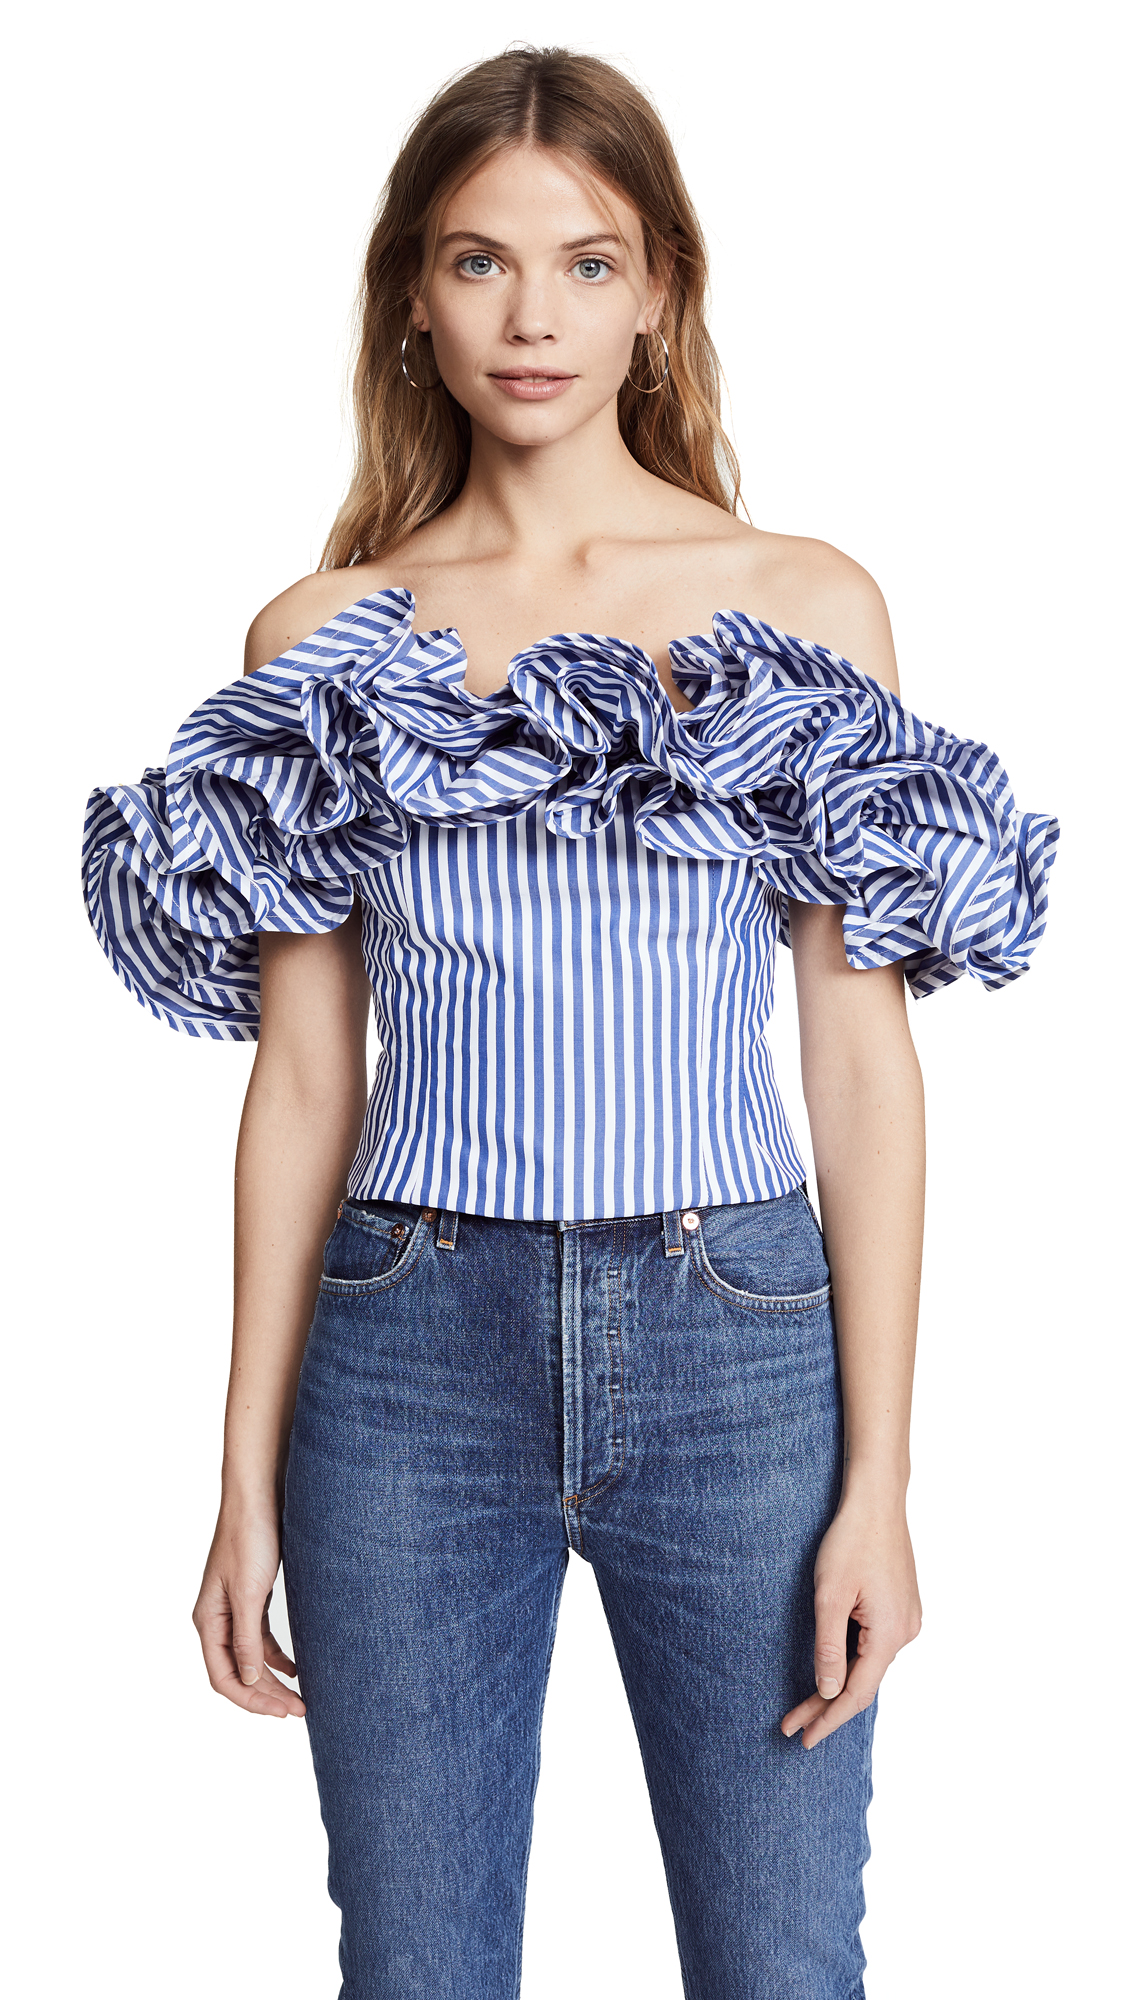 Petersyn Miram Ruffle Top